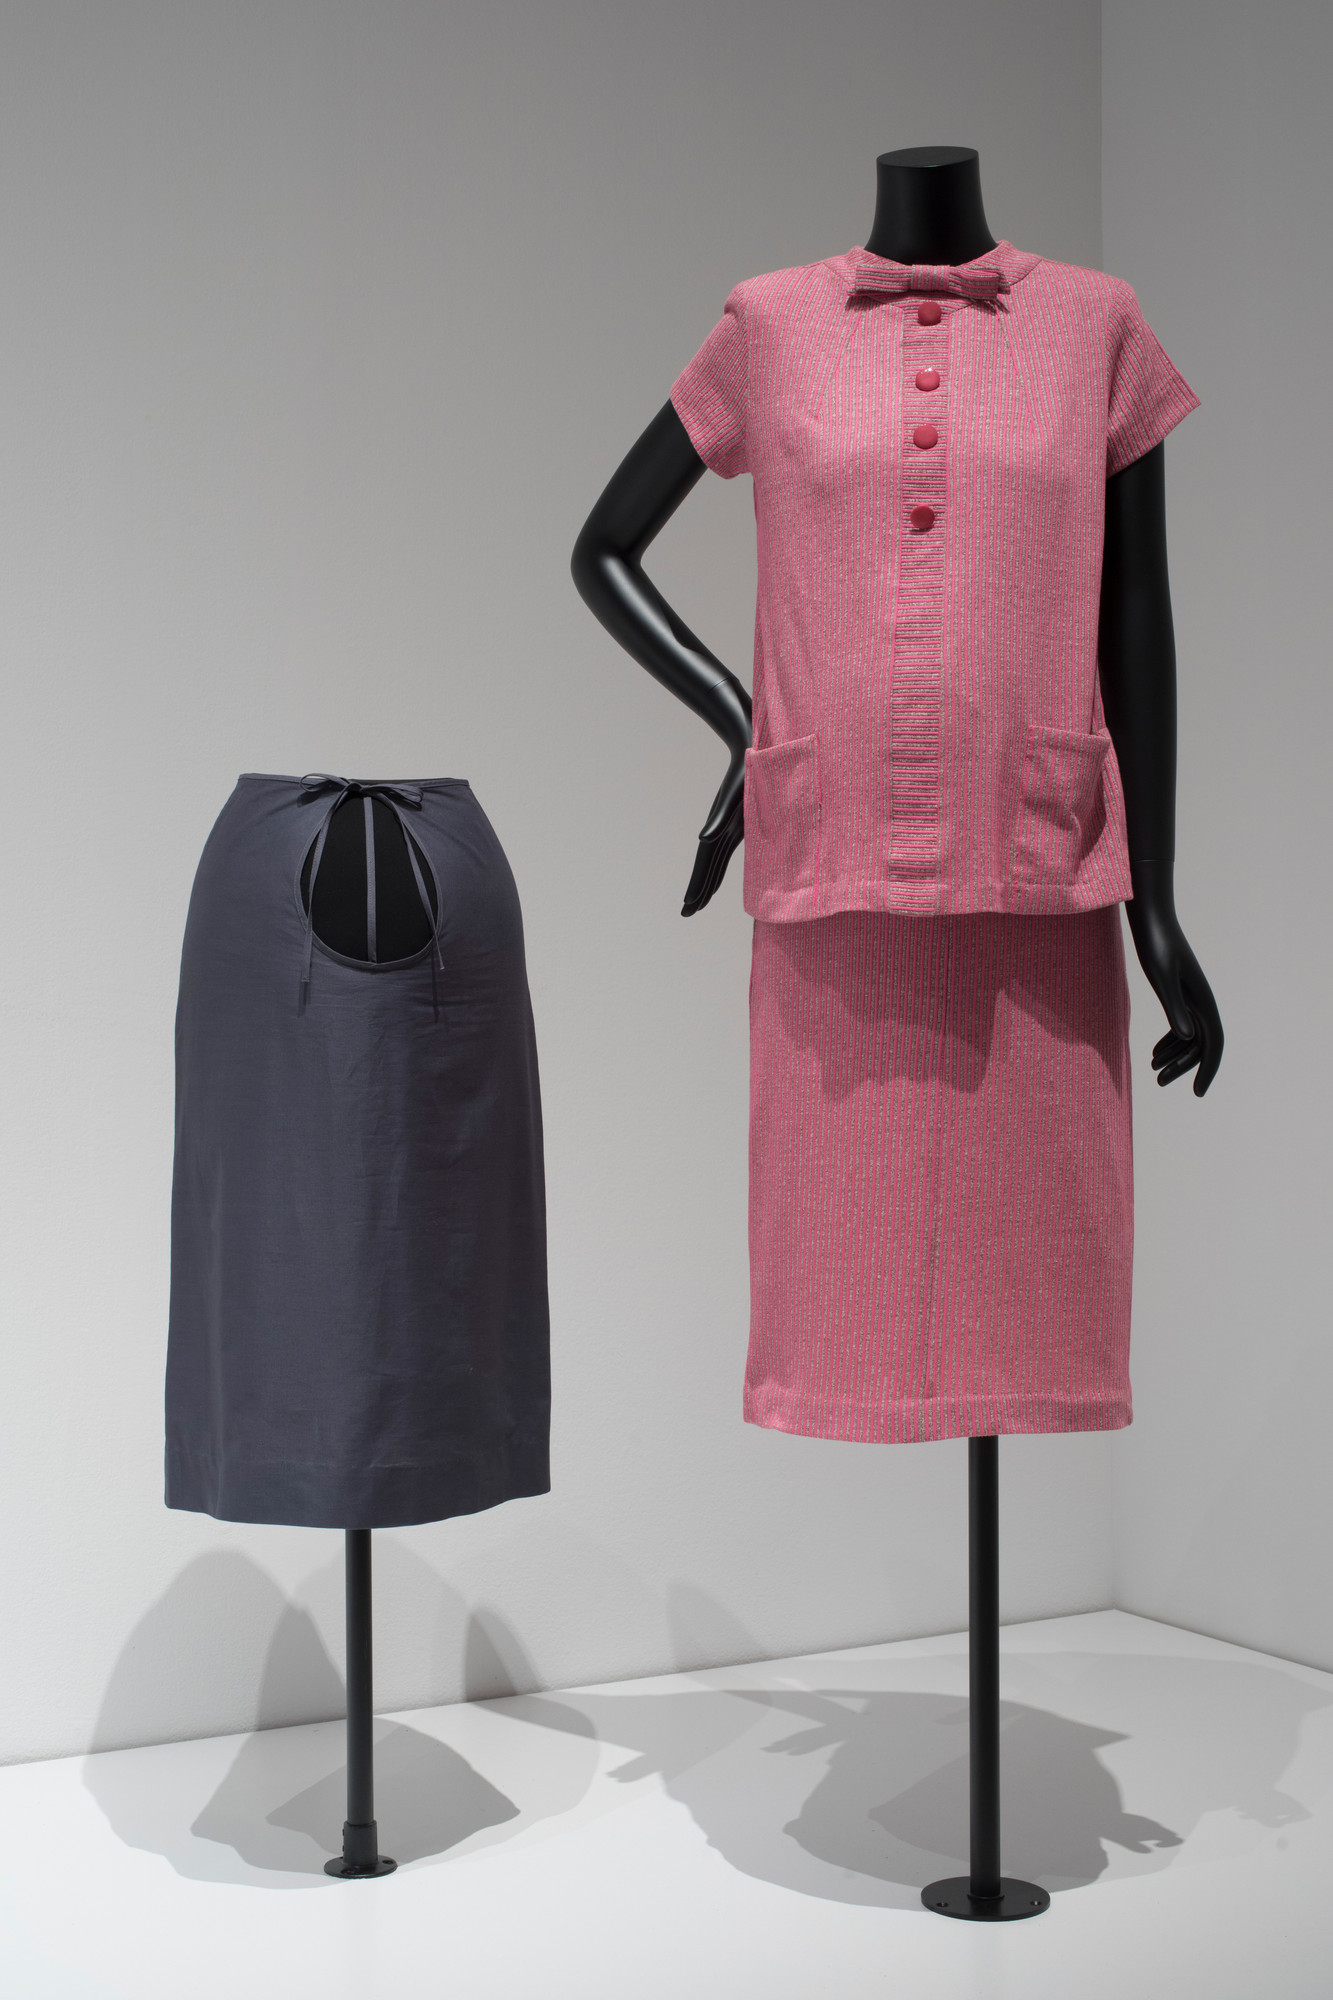 Unknown designer. Maternity top and tie-waist skirt c. 1965. Synthetic. Purchased for the exhibition. Image taken during installation of _Items: Is Fashion Modern?_  Maternity top and tie-waist skirt c. 1965. Synthetic. Purchased for the exhibition. Image taken during installation of _Items: Is Fashion Modern?_